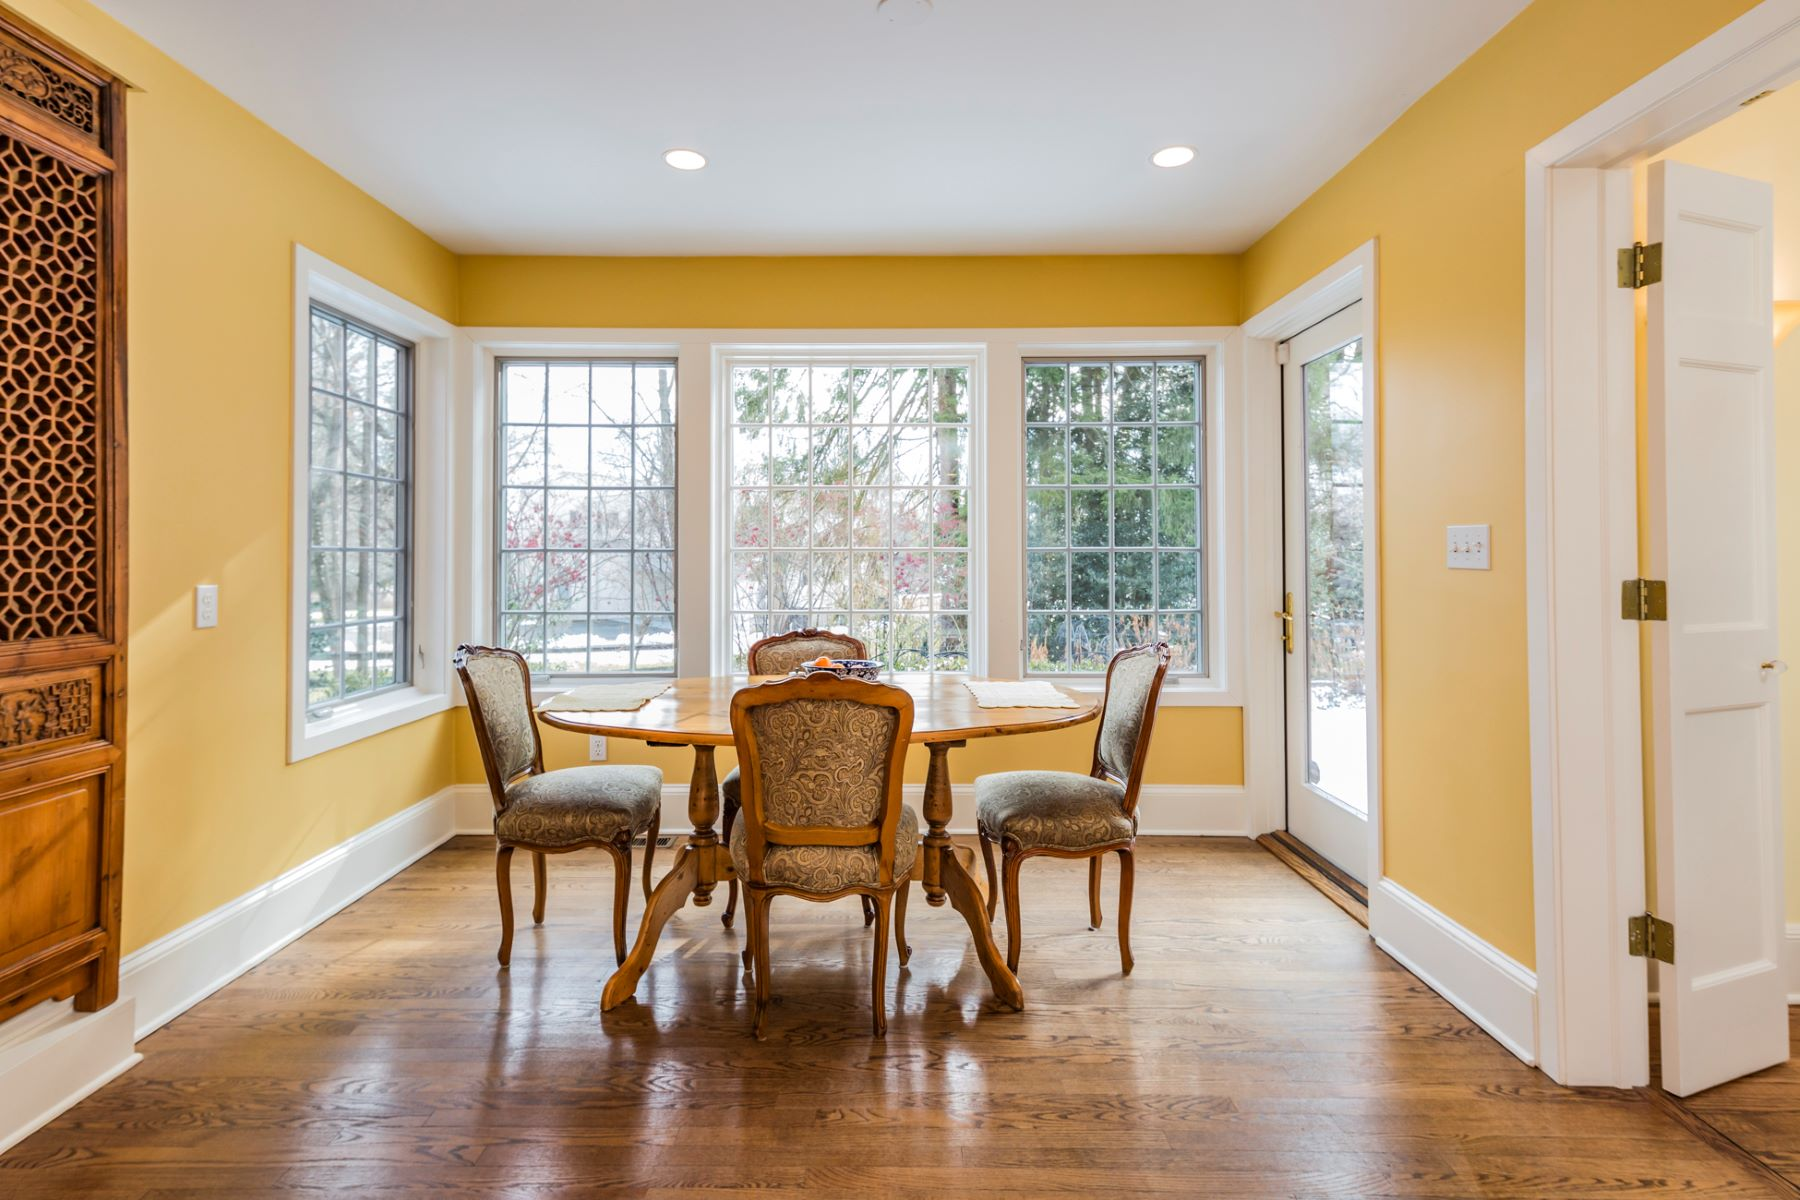 Additional photo for property listing at Updated 1930's Home Skirting the IAS Grounds 99 Battle Road Circle, Princeton, New Jersey 08540 United States